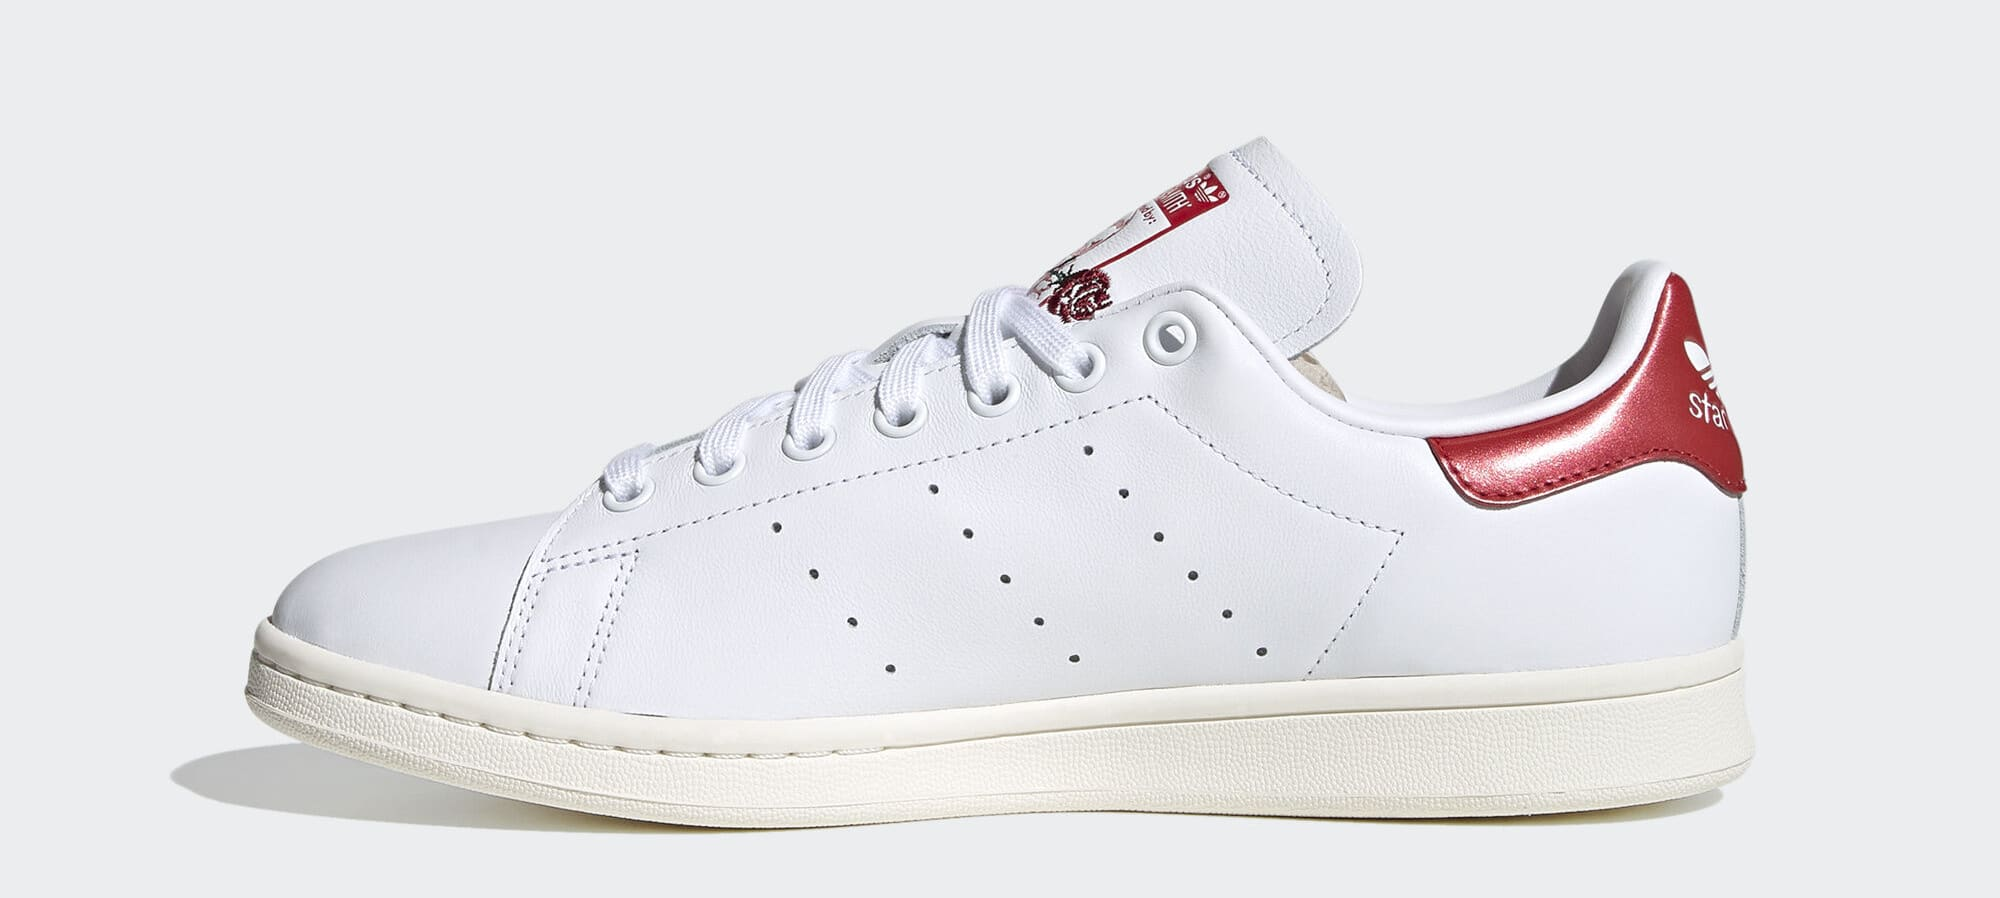 Adidas Stan Smith 'Valentine's Day' (Red) EH1736 (Medial)